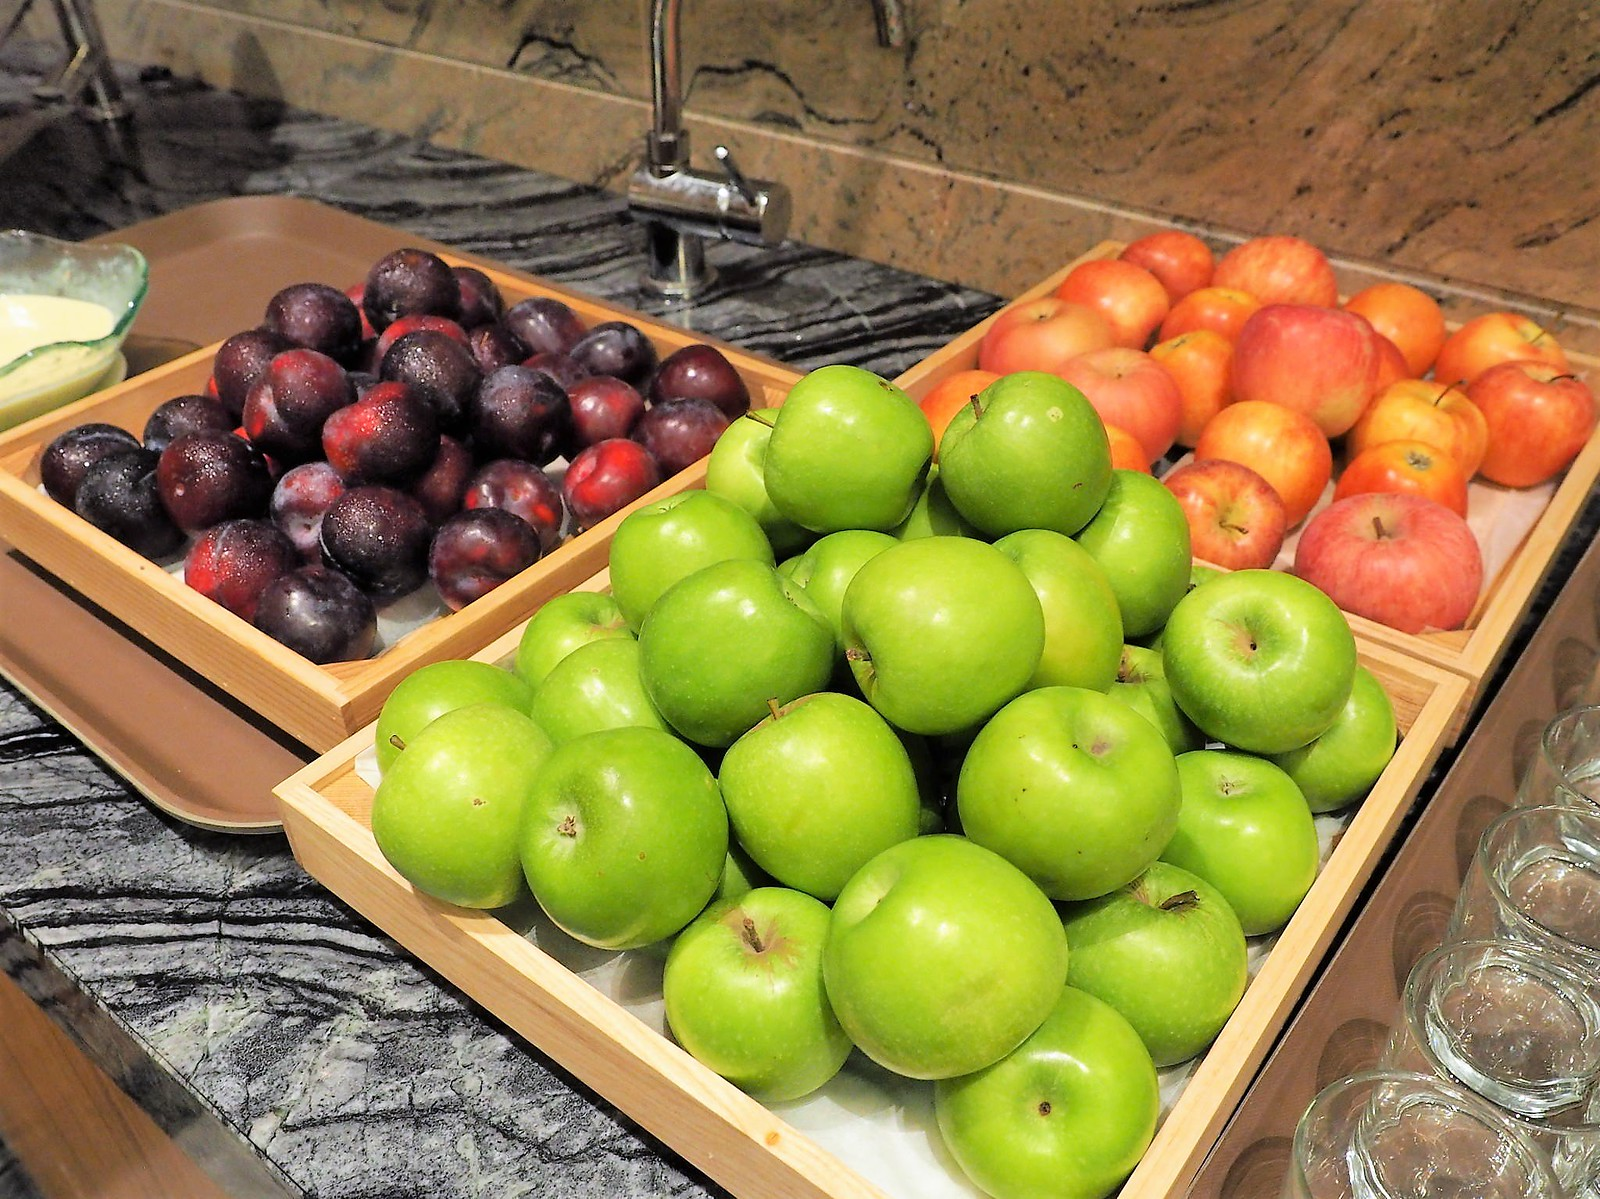 Apple and other fruits